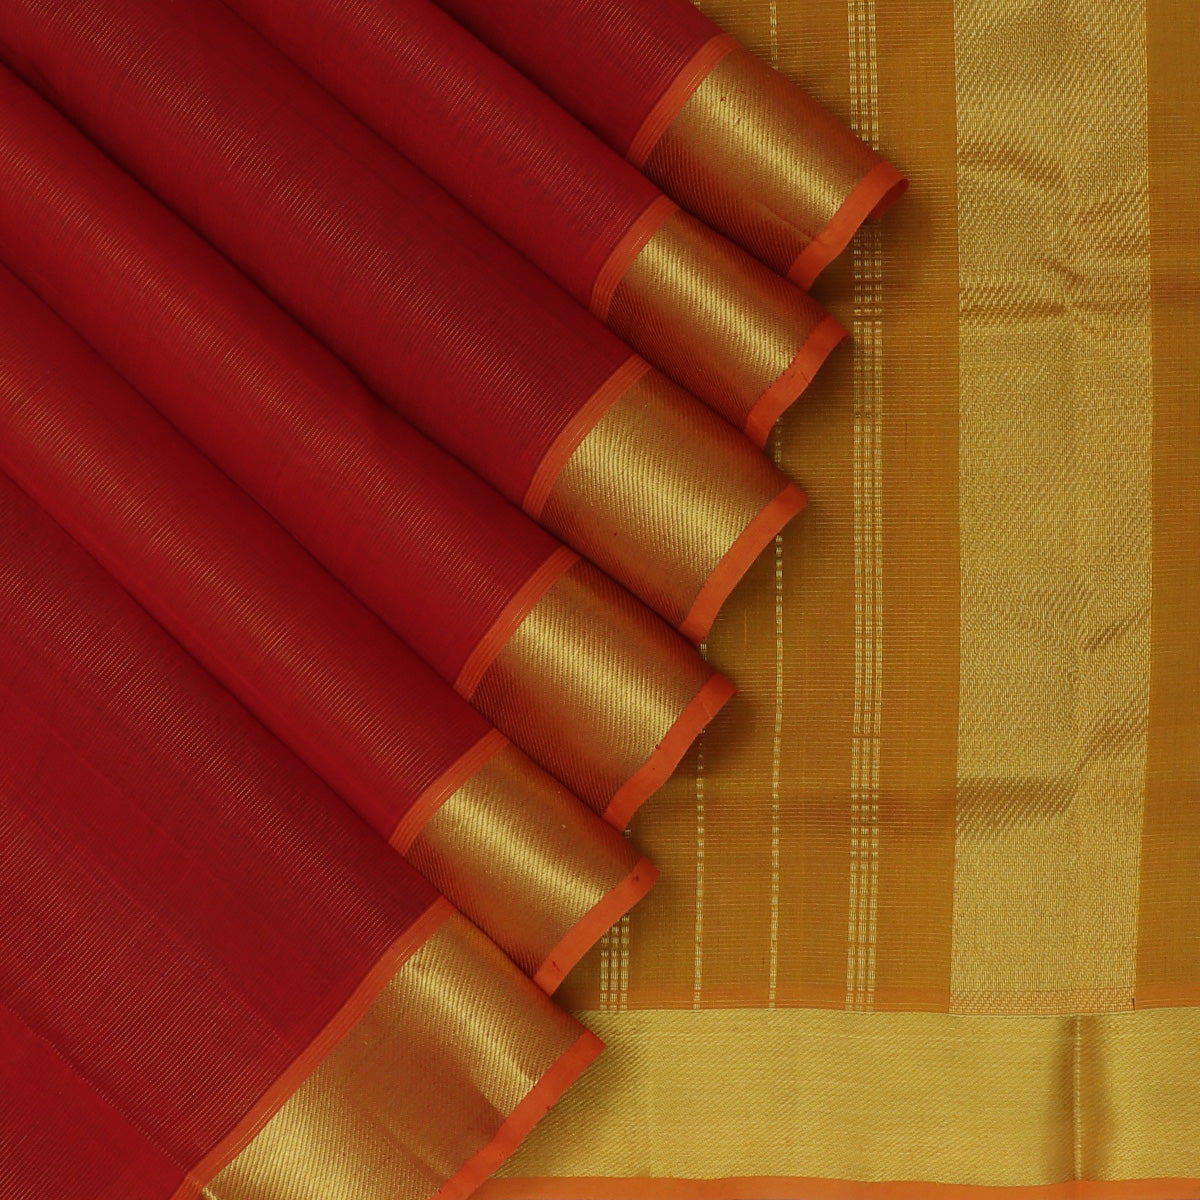 Silk Cotton Saree-Maroon and Honey Color with Traditional simple Zari Border Vairaosi